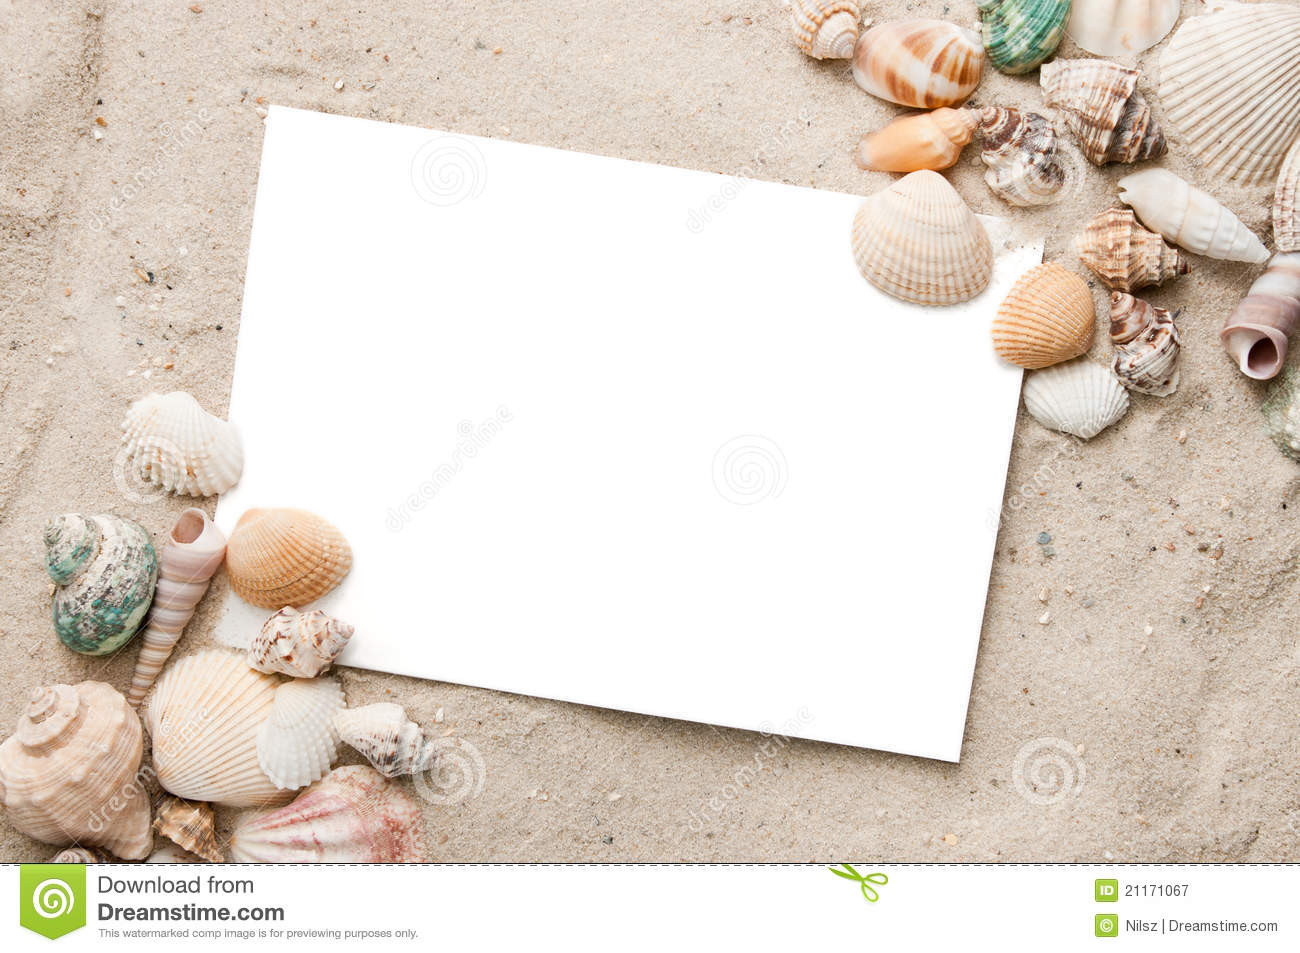 Blank Beach Vacation Postcard Stock Image - Image of vacation, tropic: 21171067